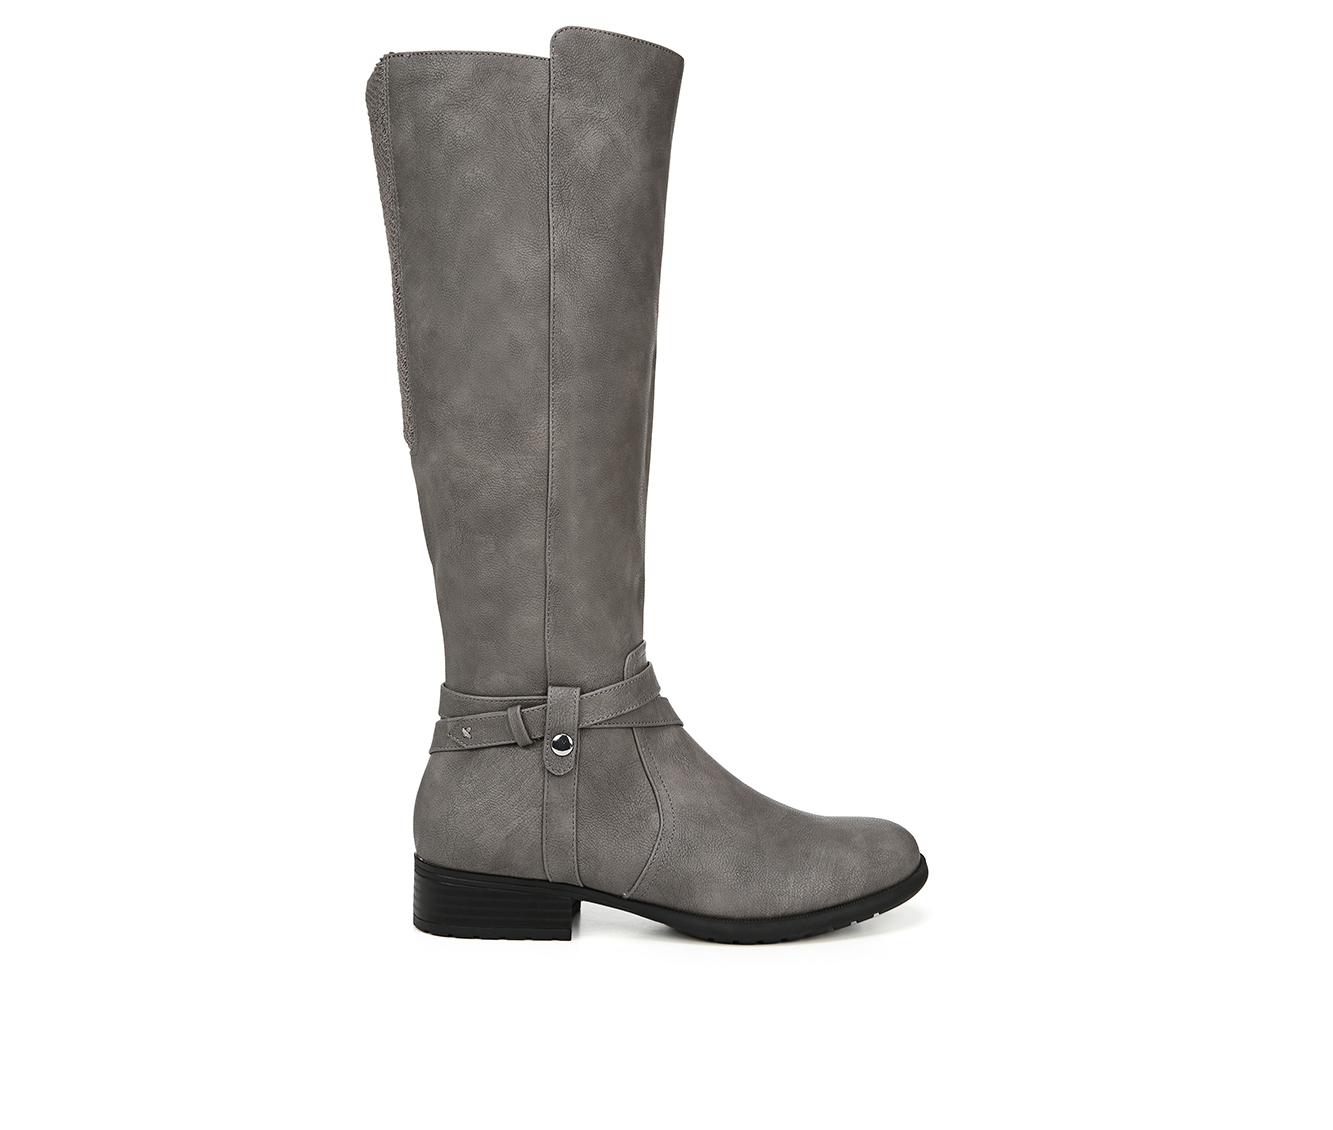 LifeStride Xtrovert Wide Calf Women's Boots (Gray - Faux Leather)